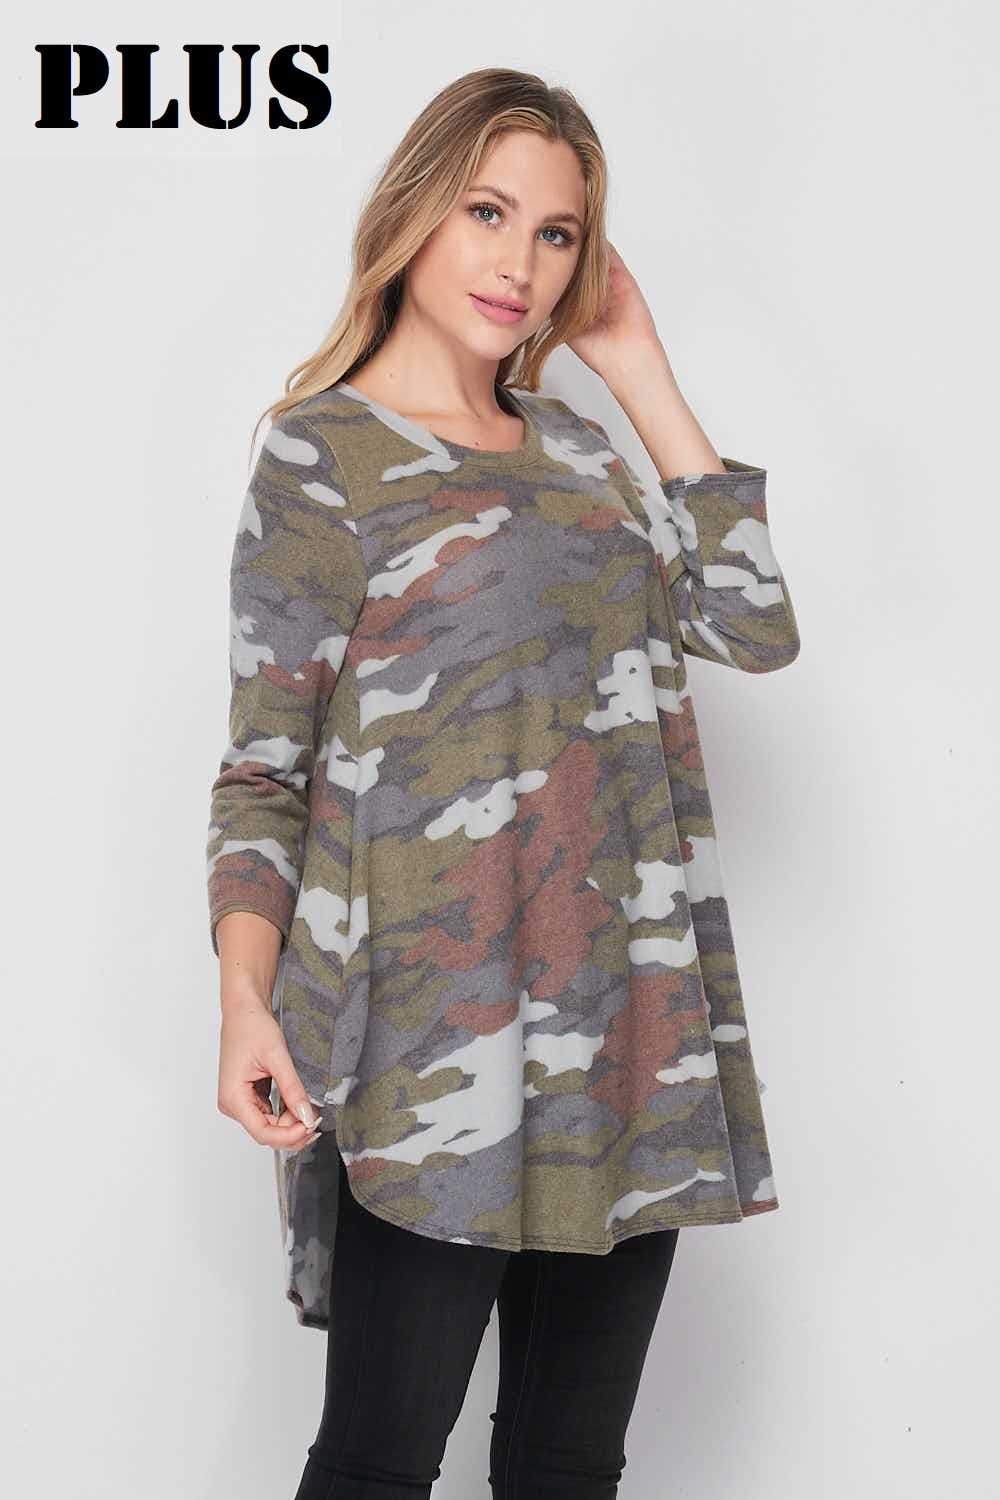 PLUS Color Mix Camo Soft Thin Knit Tunic